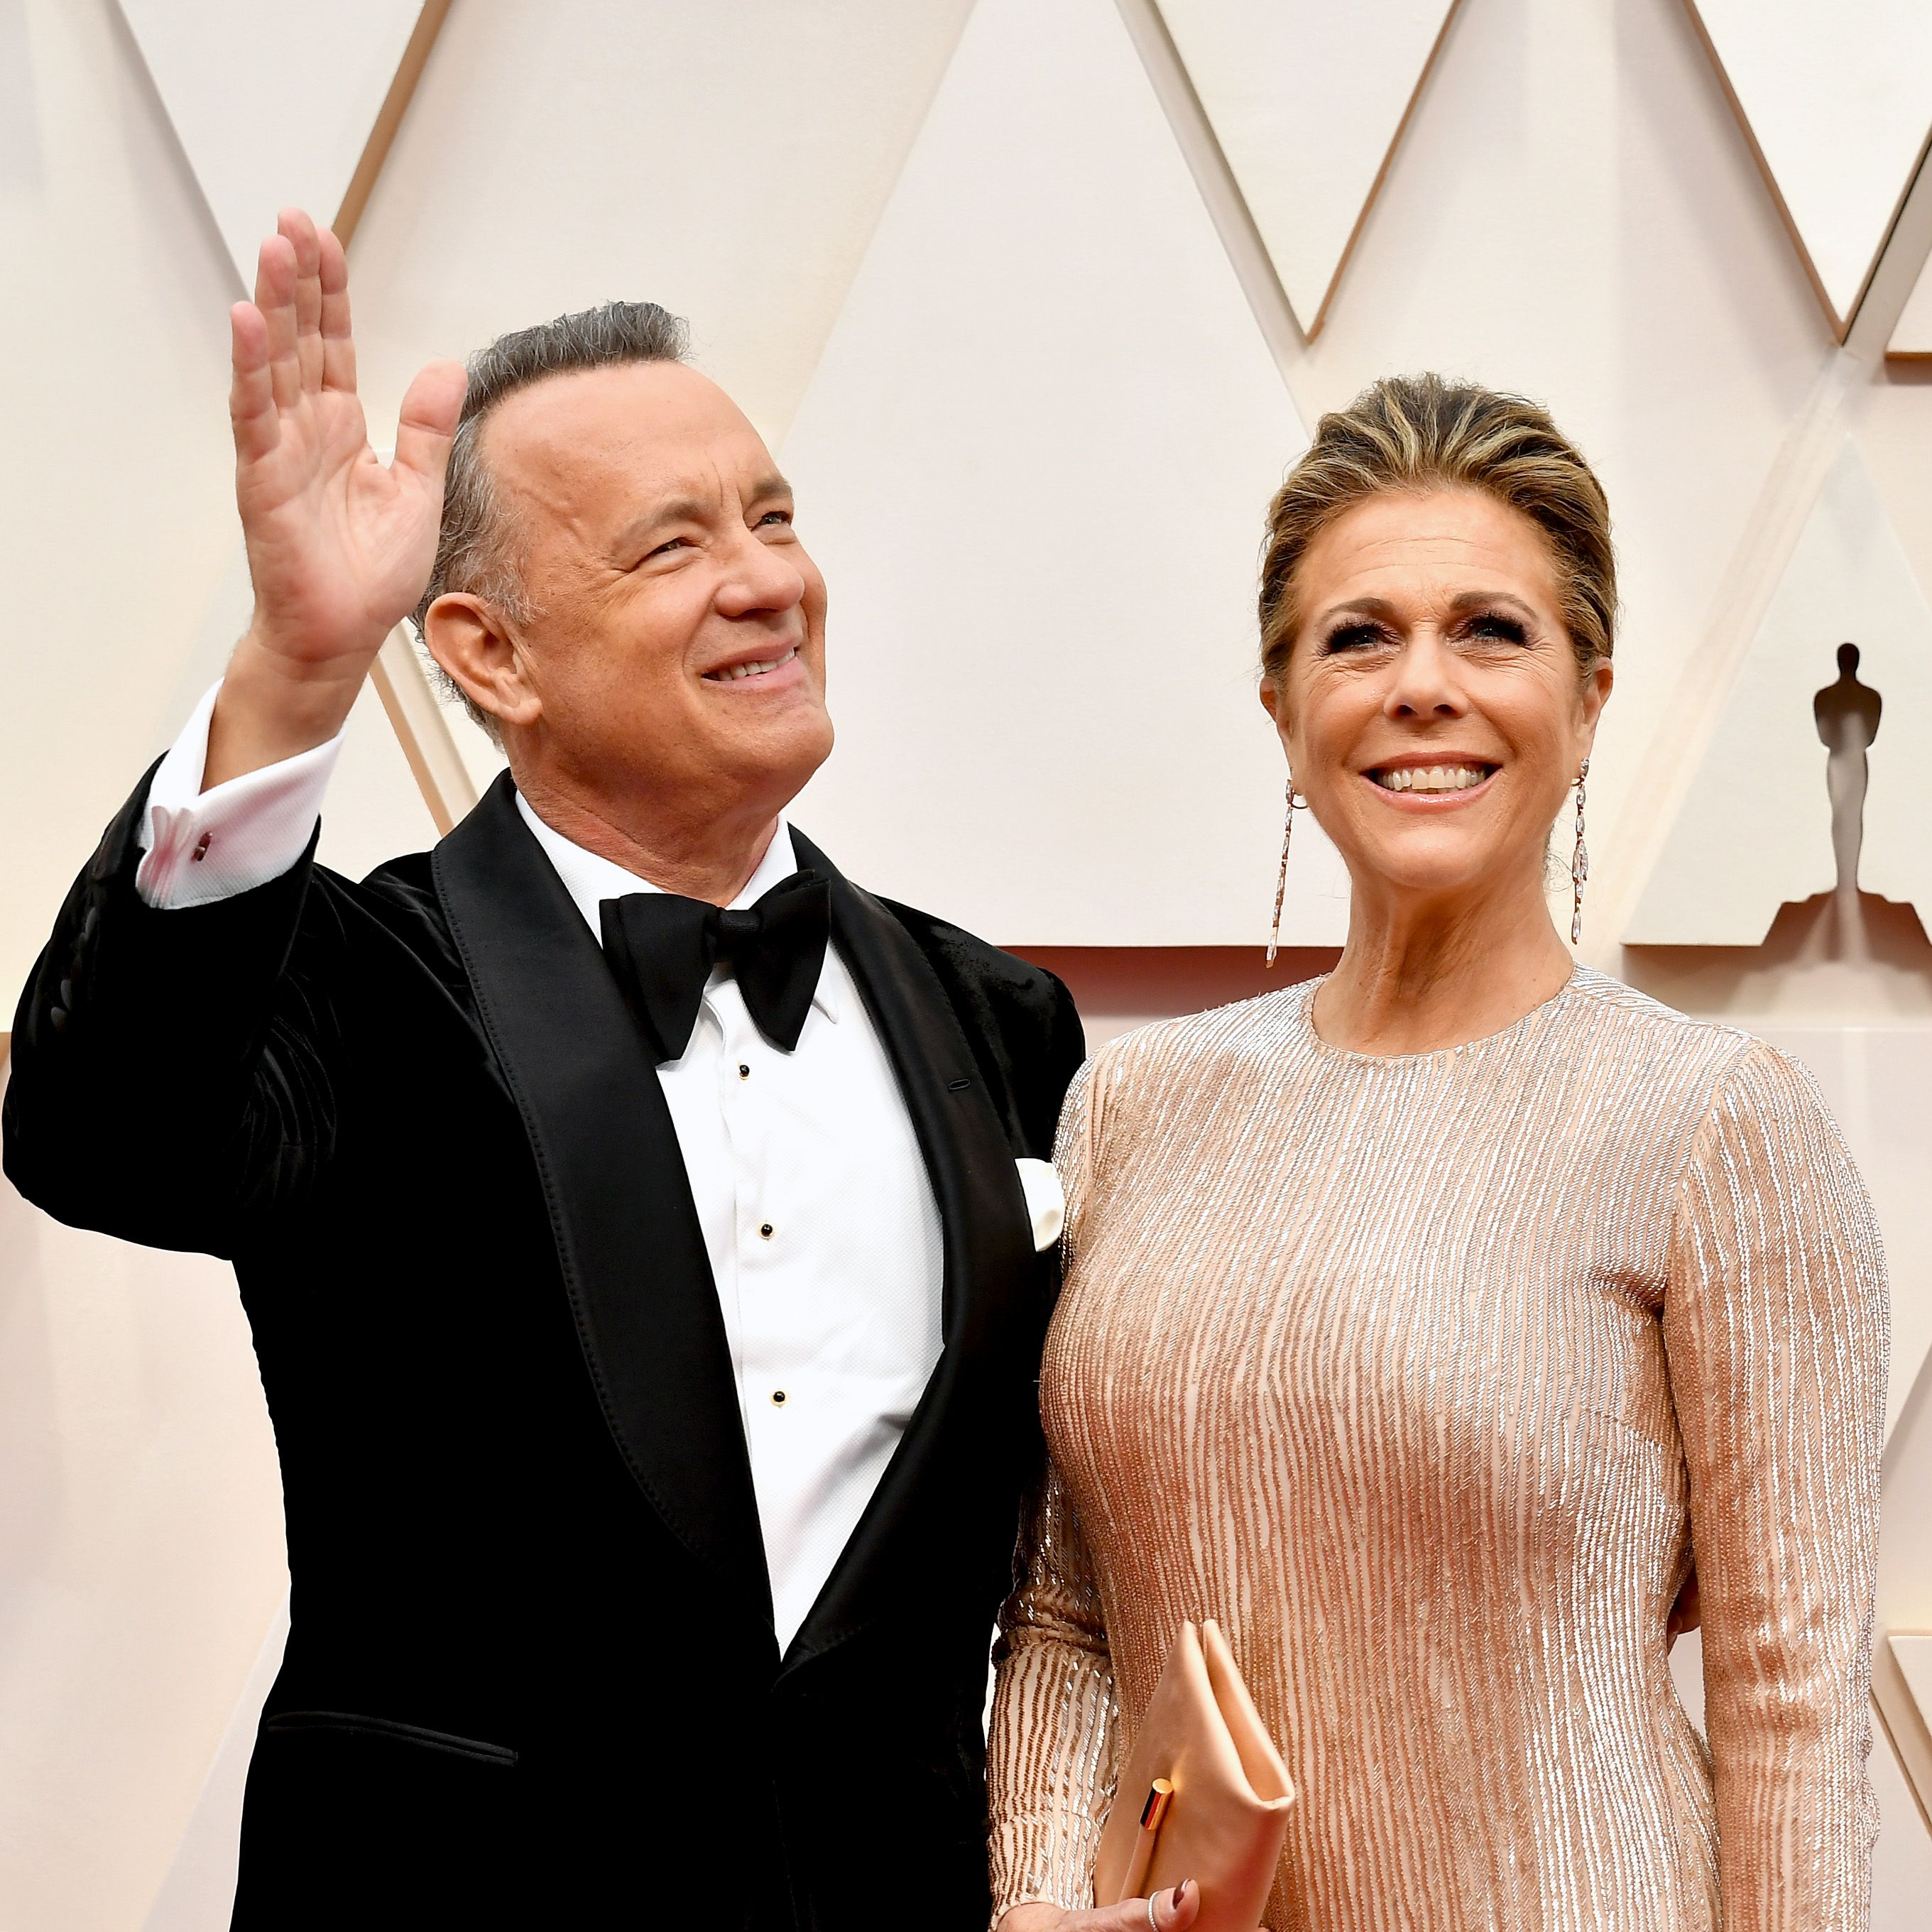 Tom Hanks and Rita Wilson are fine now after going through the coronavirus.